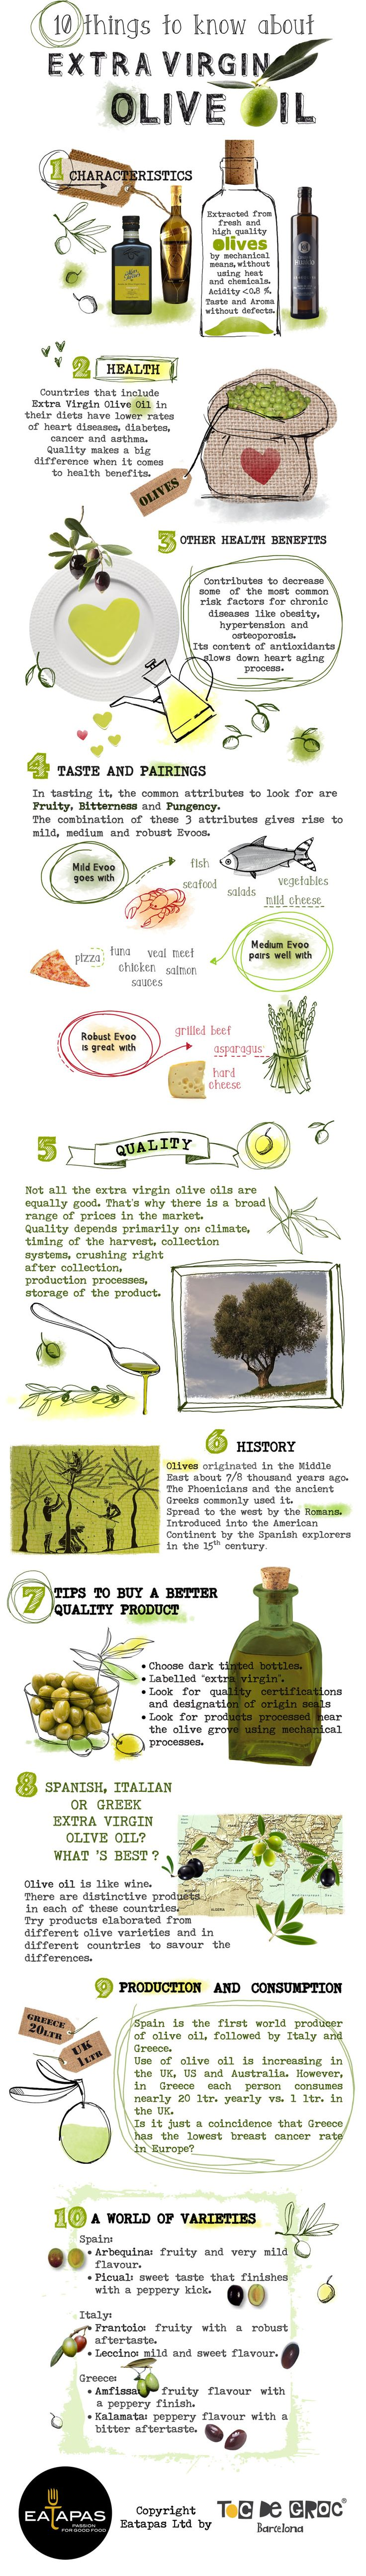 10 Things to Know About Extra Virgin Olive Oil #aove #evoo Extra Virgin Olive Oil - Aceite de Oliva Virgen Extra